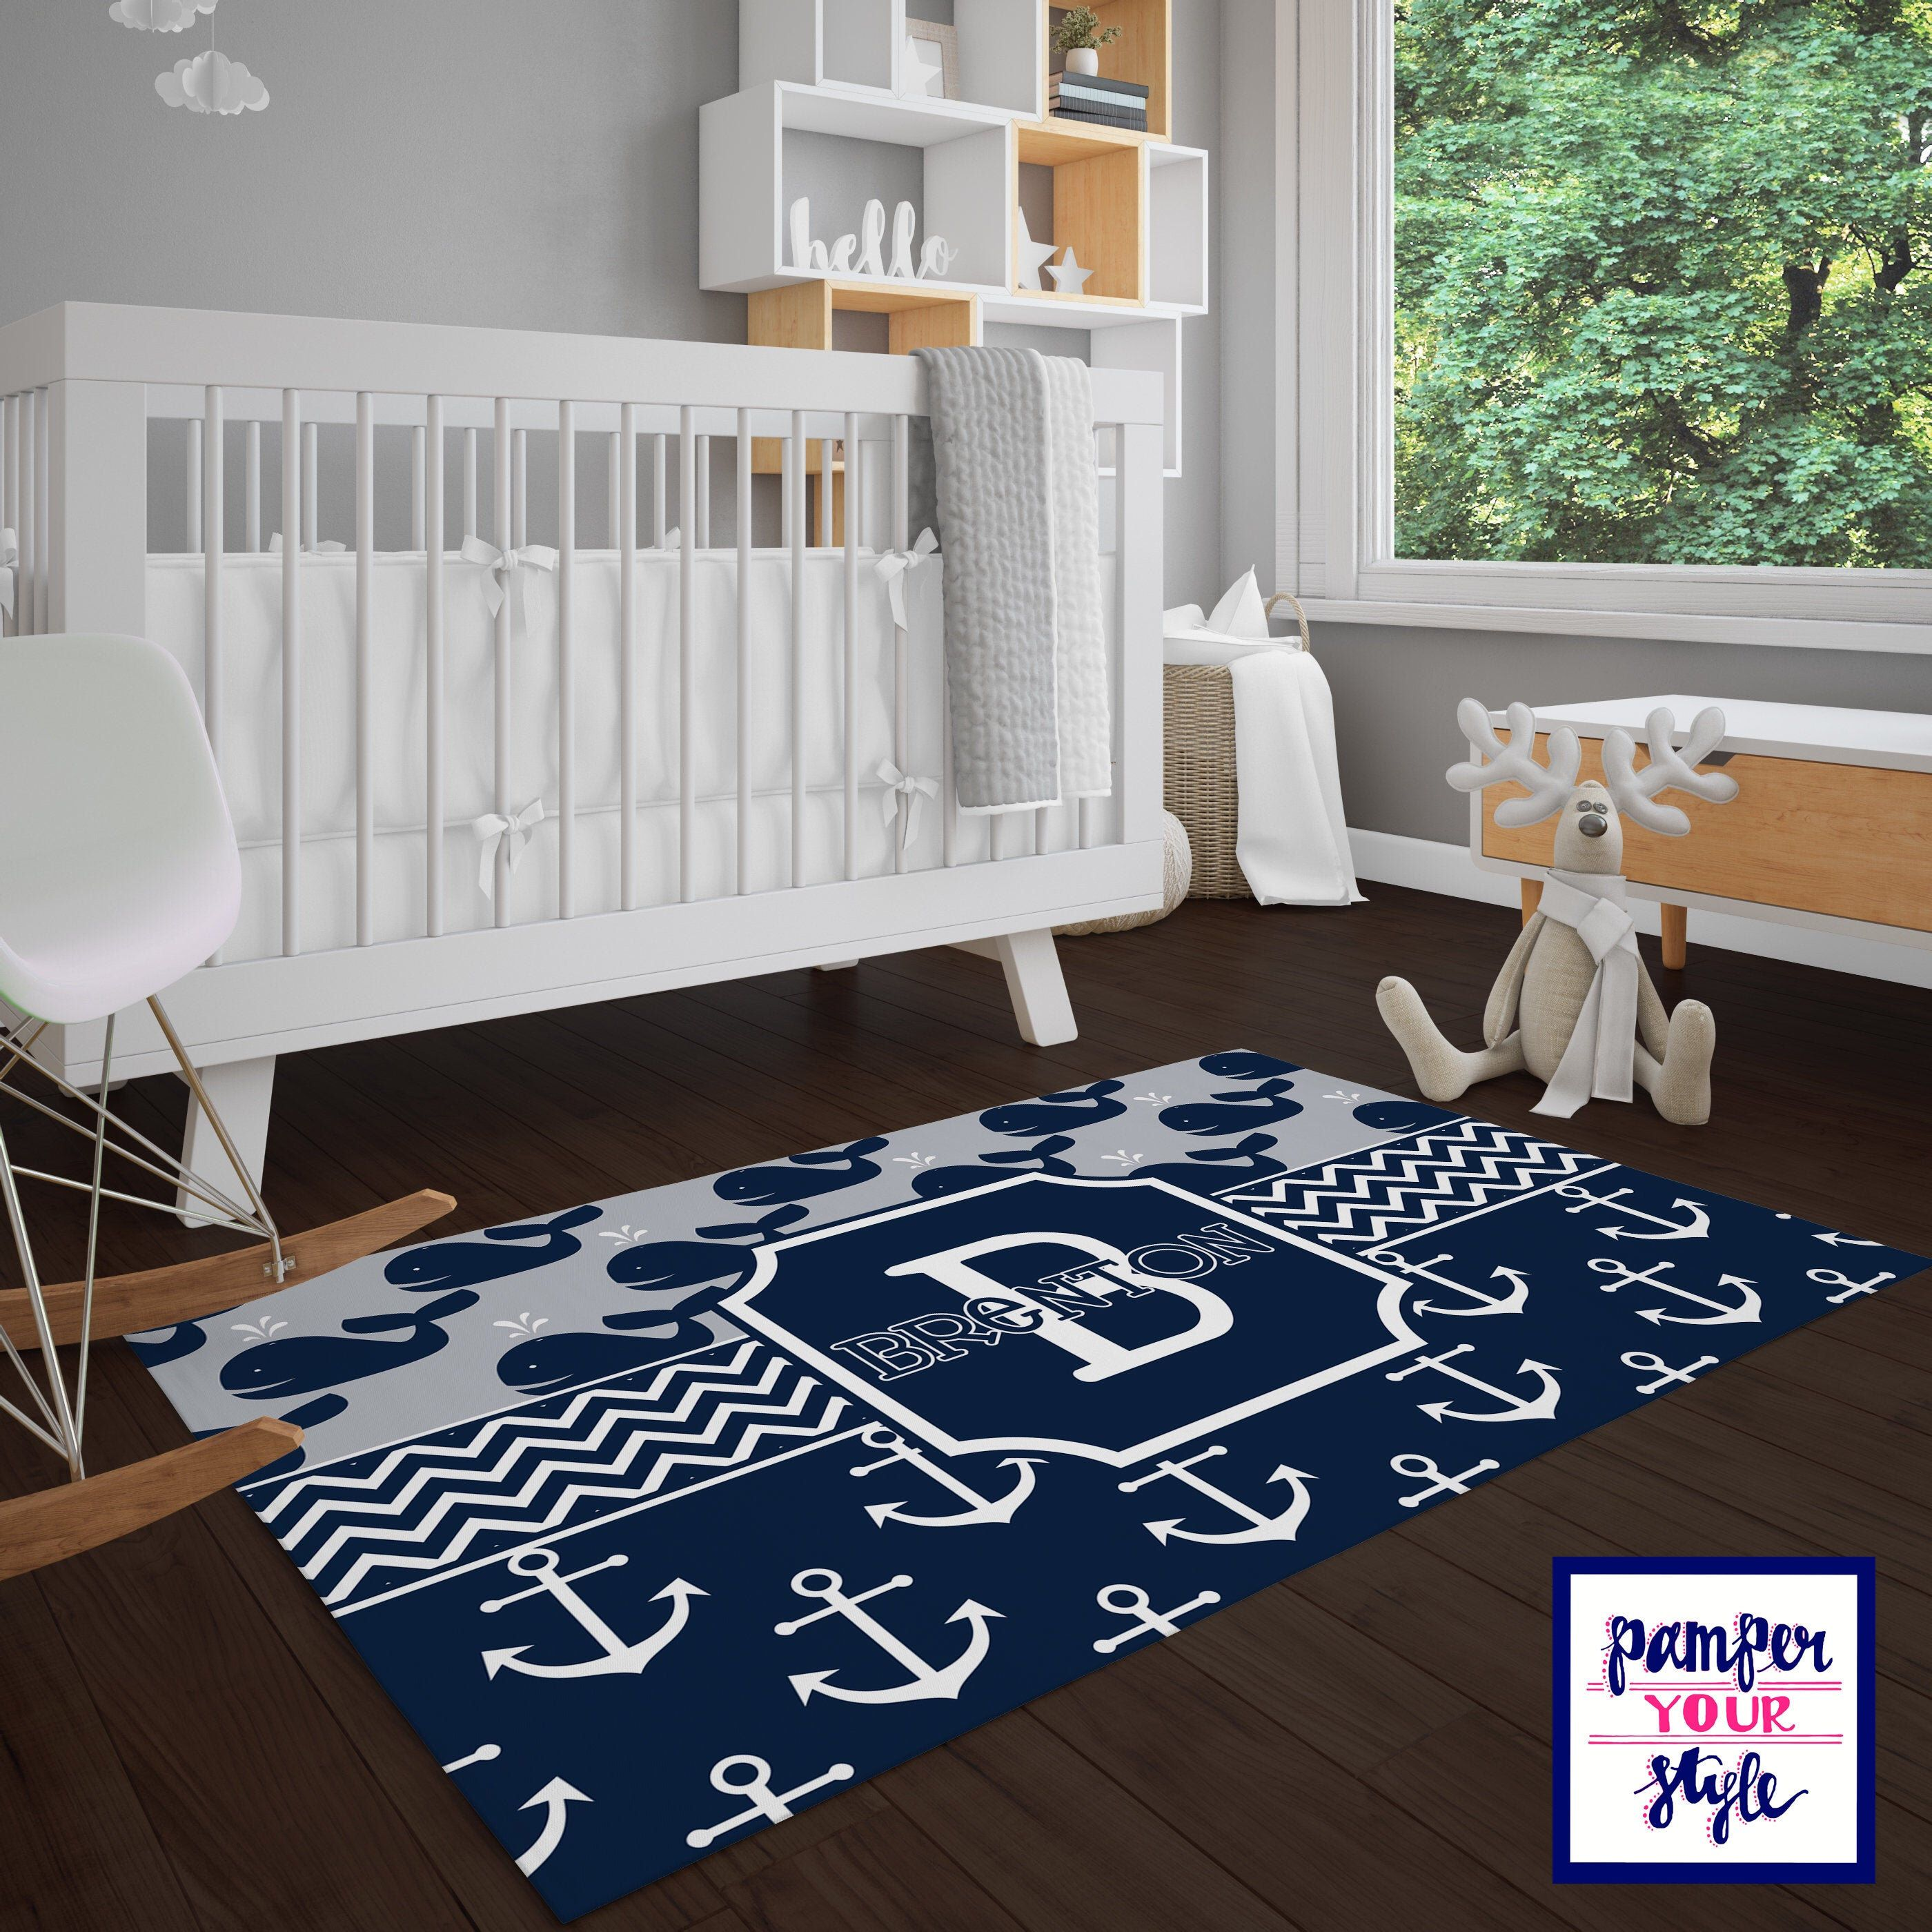 Whale Rug Gray And Navy Area Rug Nautical Nursery Rug Whale Bedroom Decor Personalized Nursery Rug In 2020 Nursery Rugs Nautical Nursery Rug Whale Nursery Rug